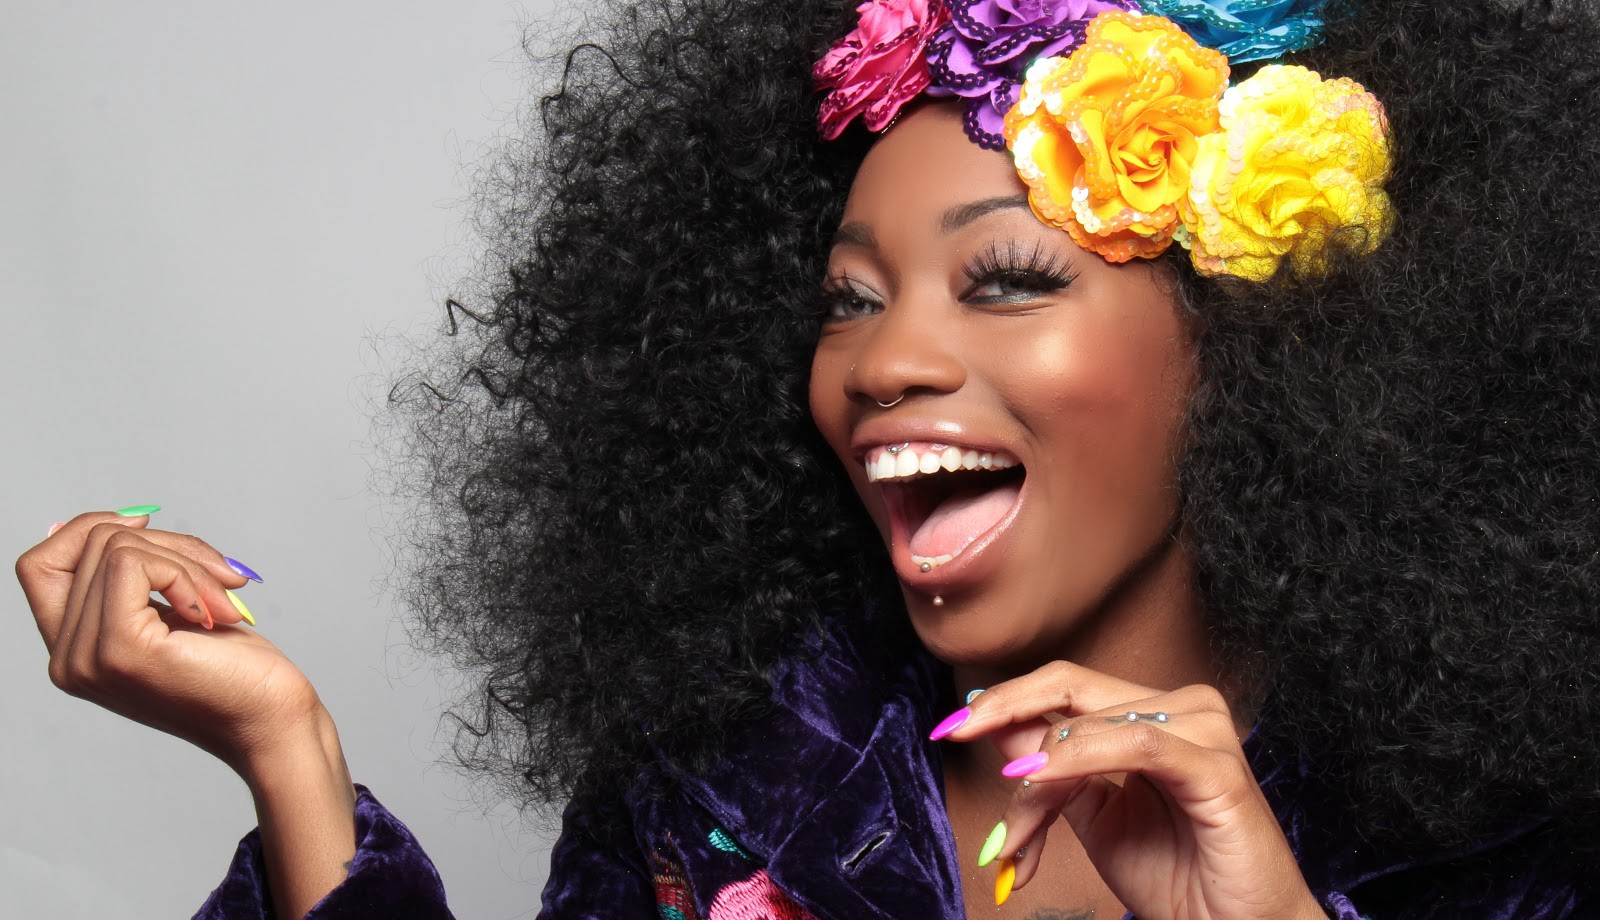 A beautiful dark-skinned woman with flowers in her hair is smiling.